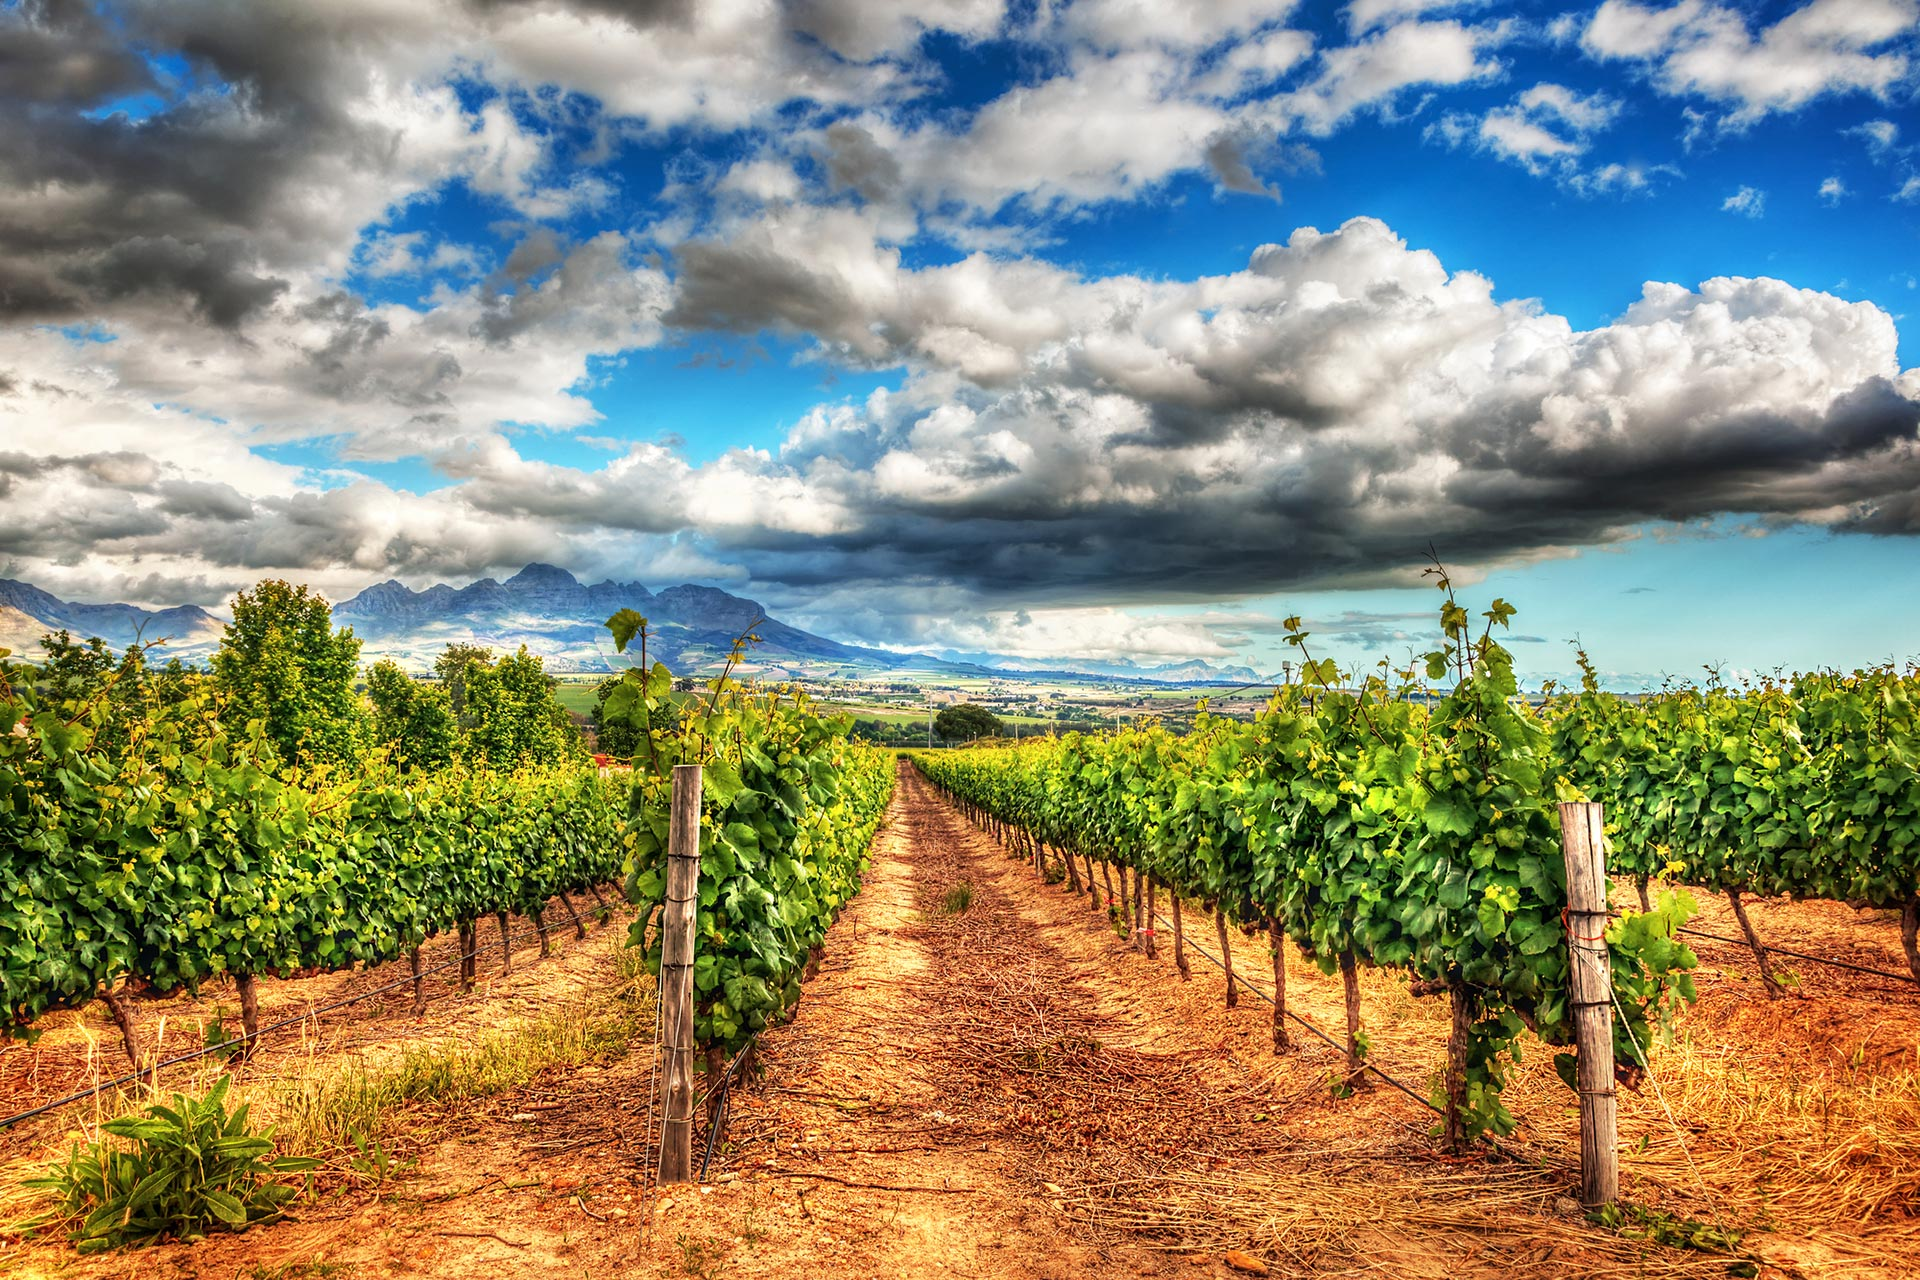 Premium Wines of the New World: South Africa and Others